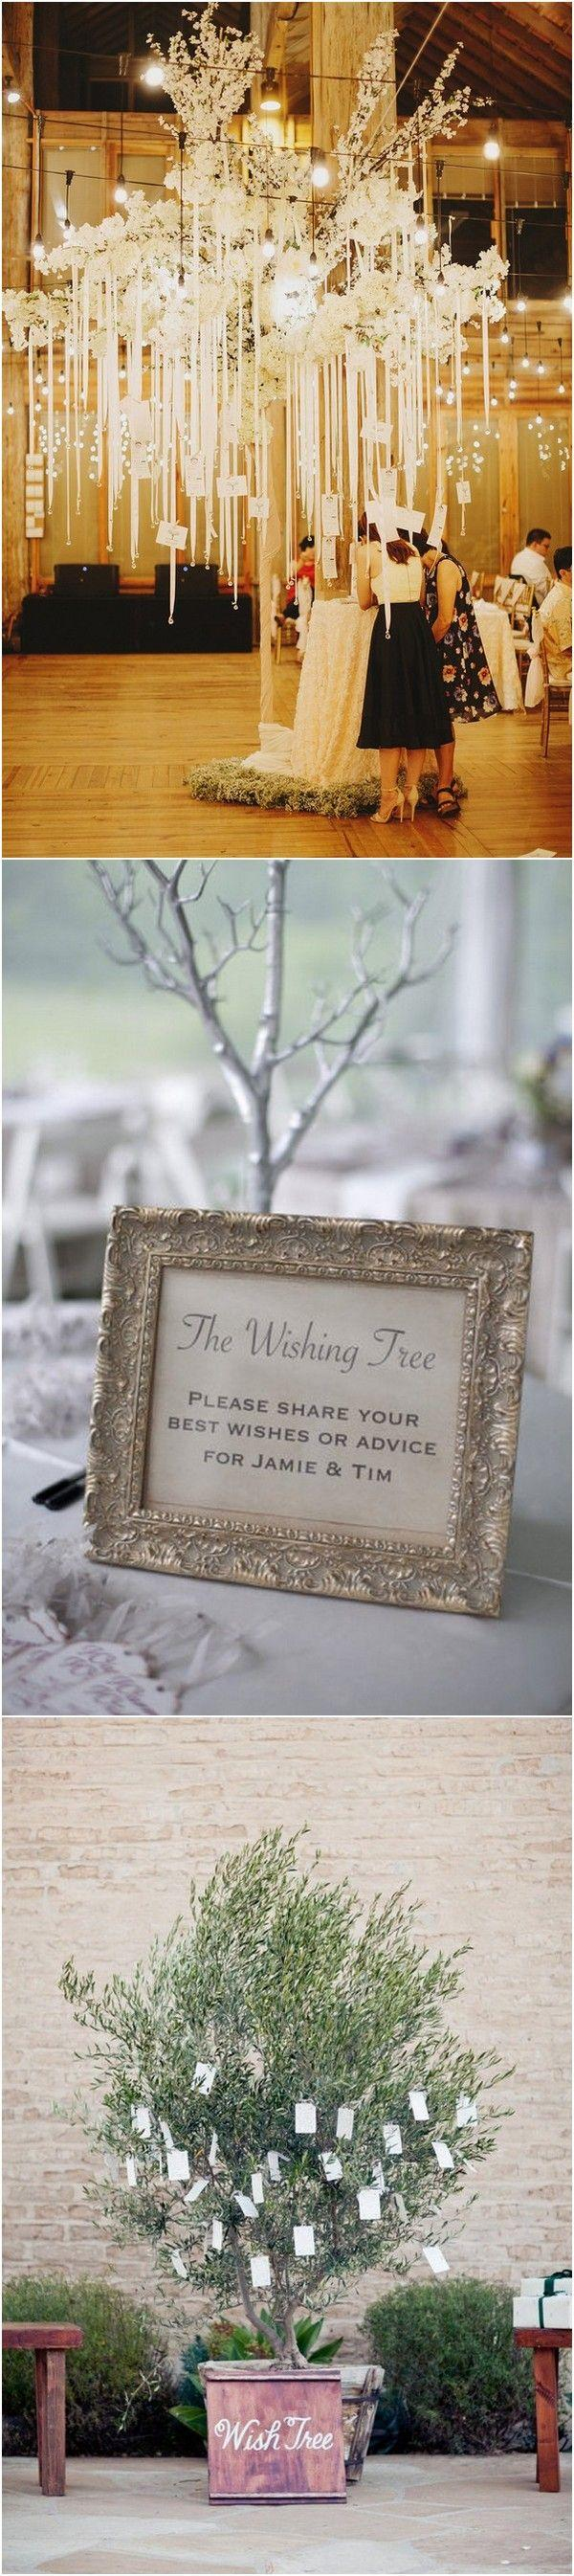 Top 10 Wishing Tree Decoration Ideas For Your Wedding Day